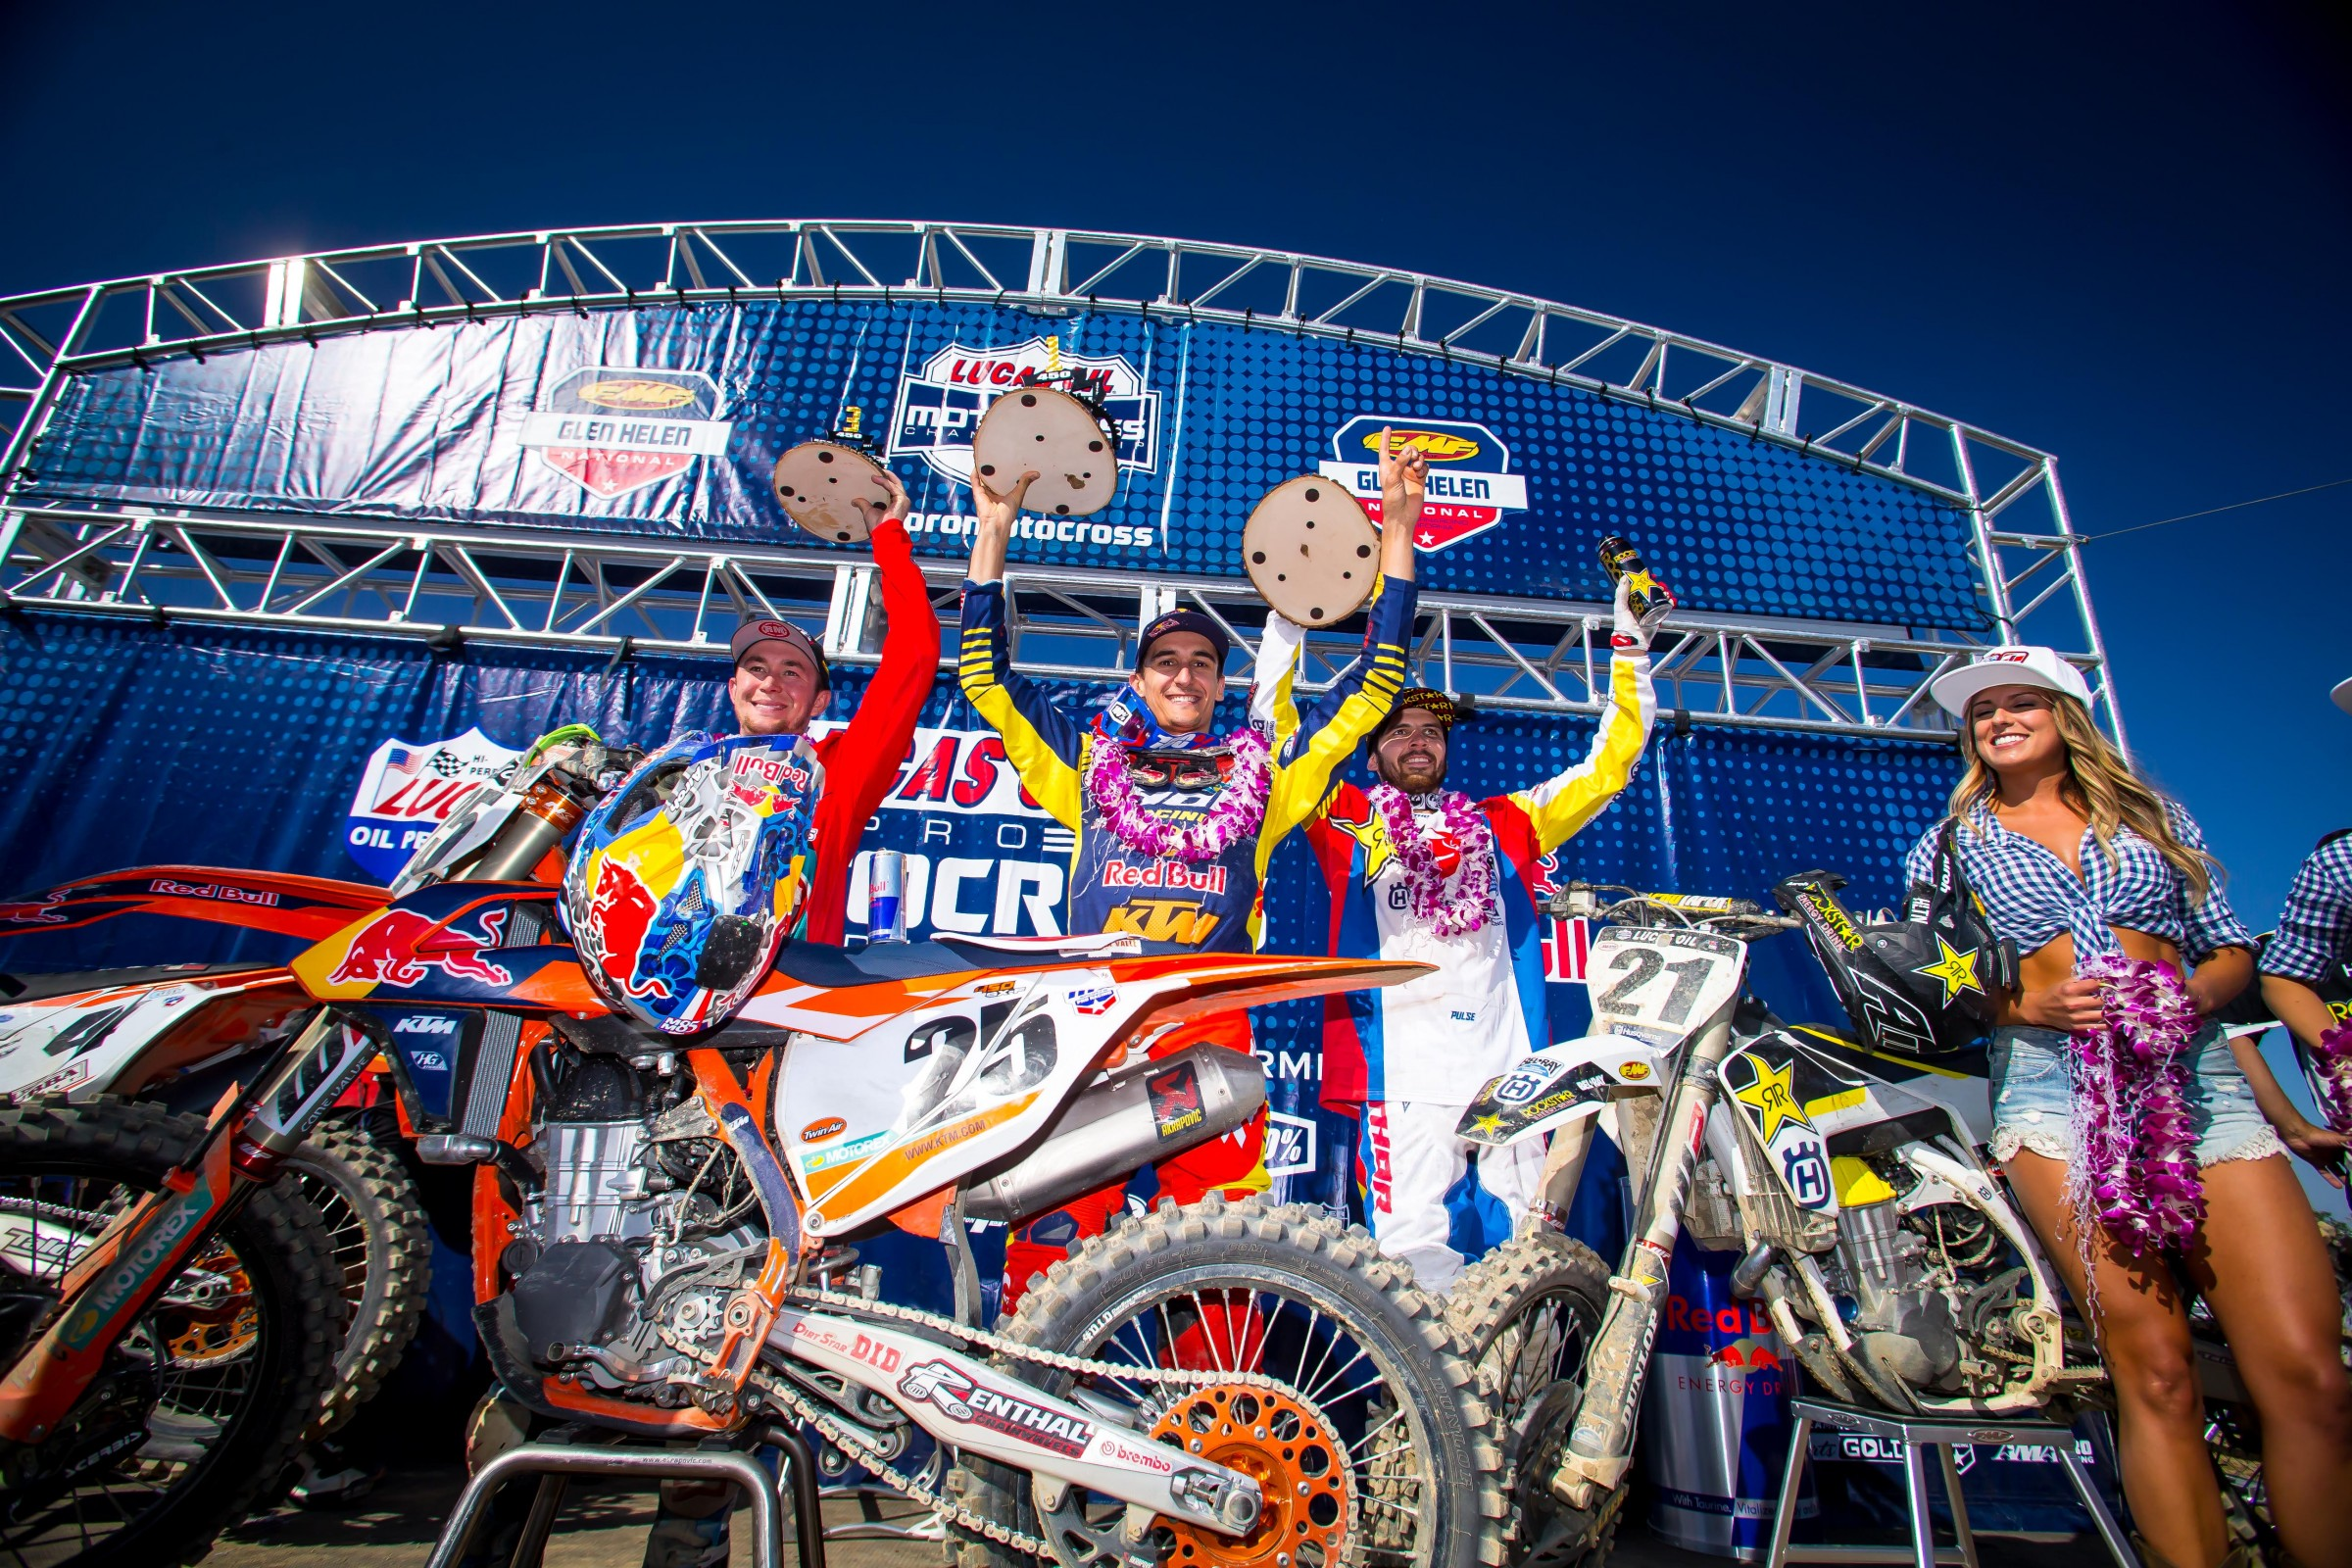 Austria owned the 450MX podium at Glen Helen.